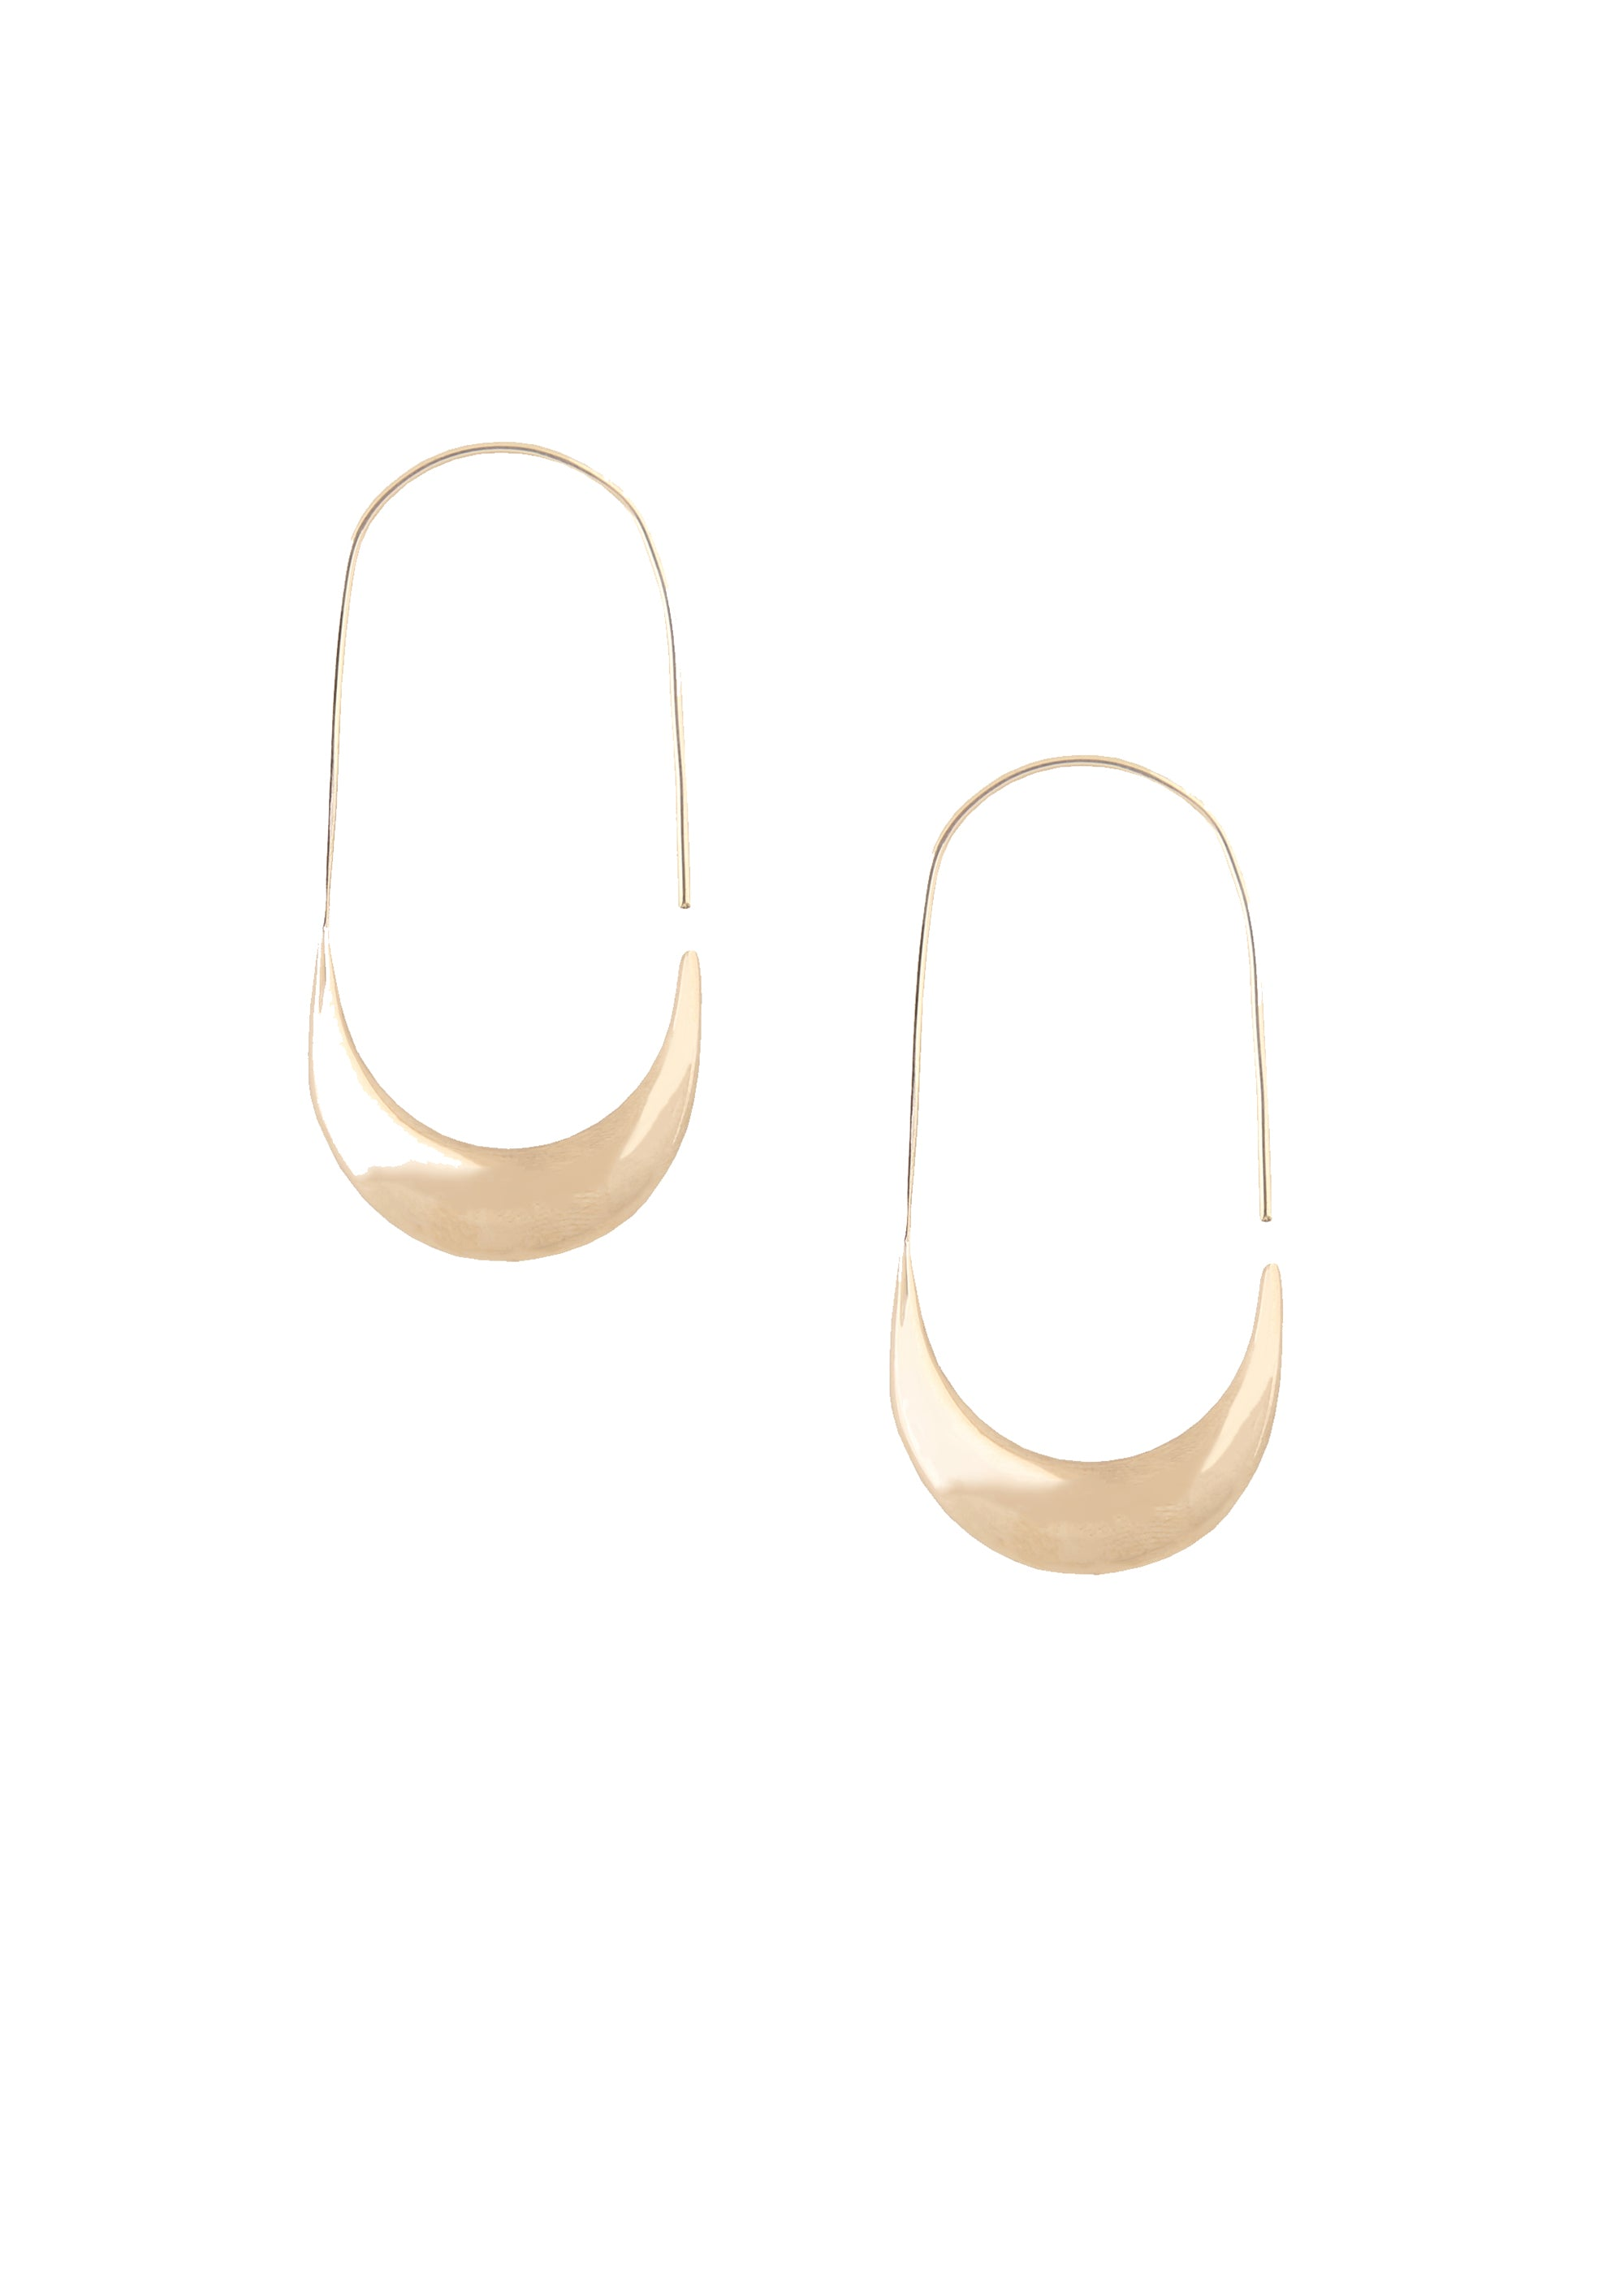 soko mezi large hoop earring gold handcrafted